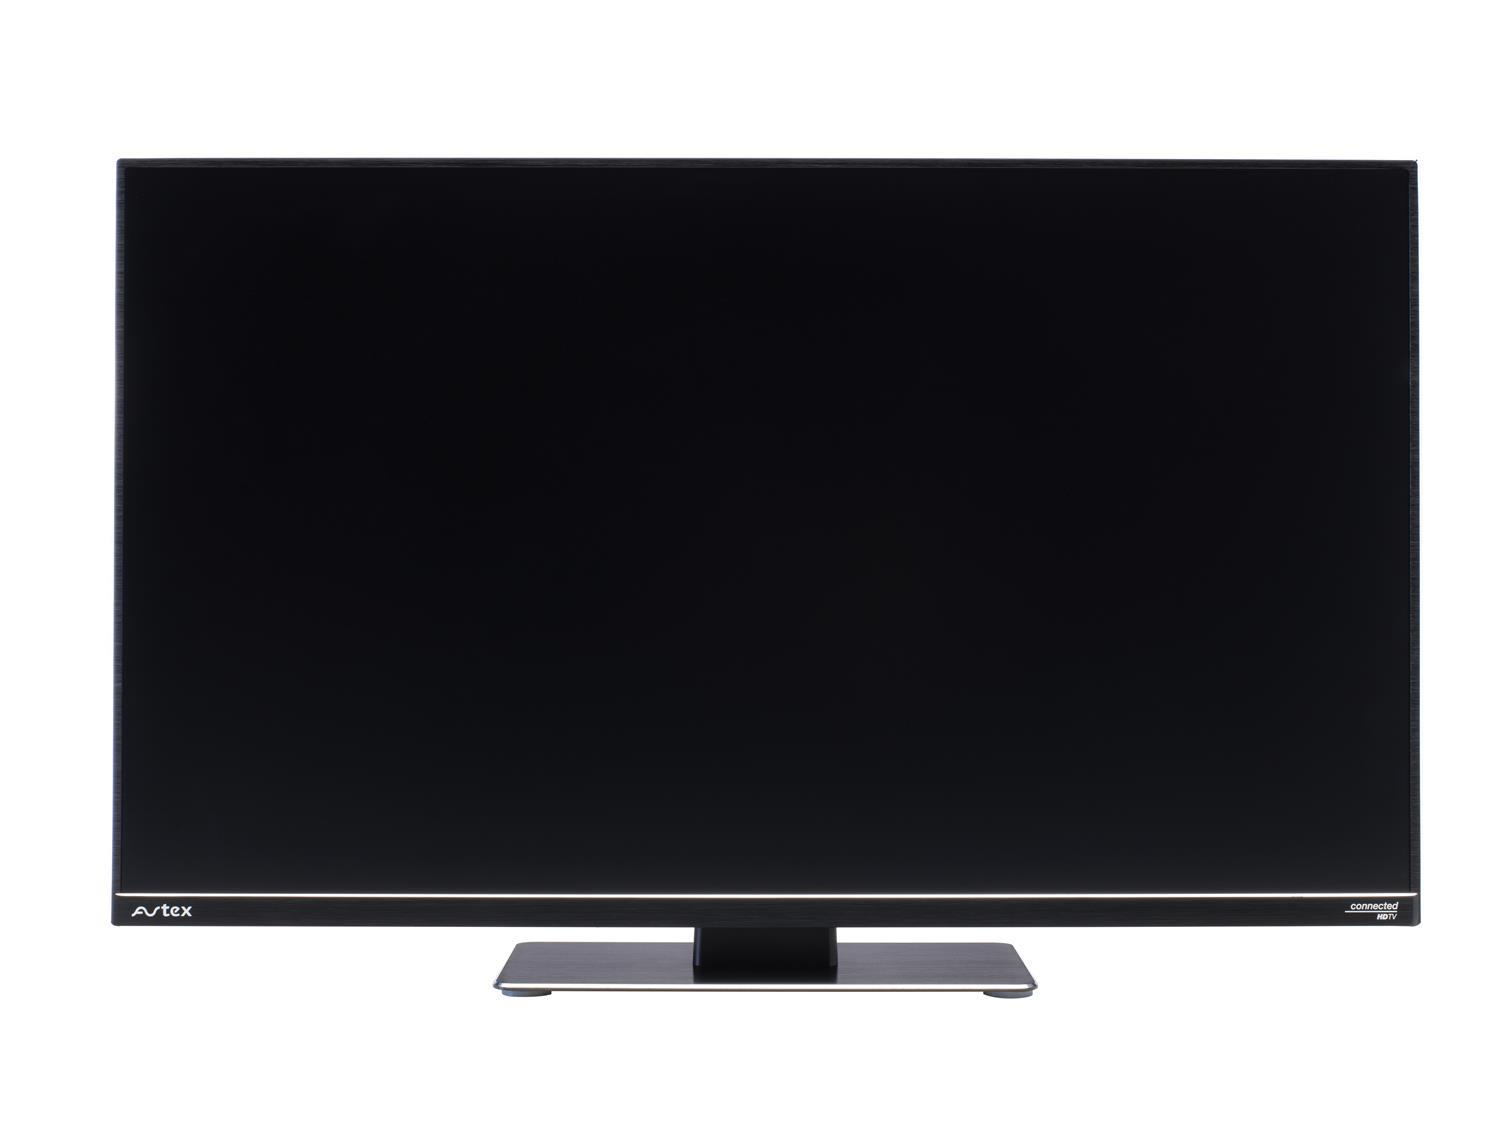 The Avtex 219DSFVP Connected TV